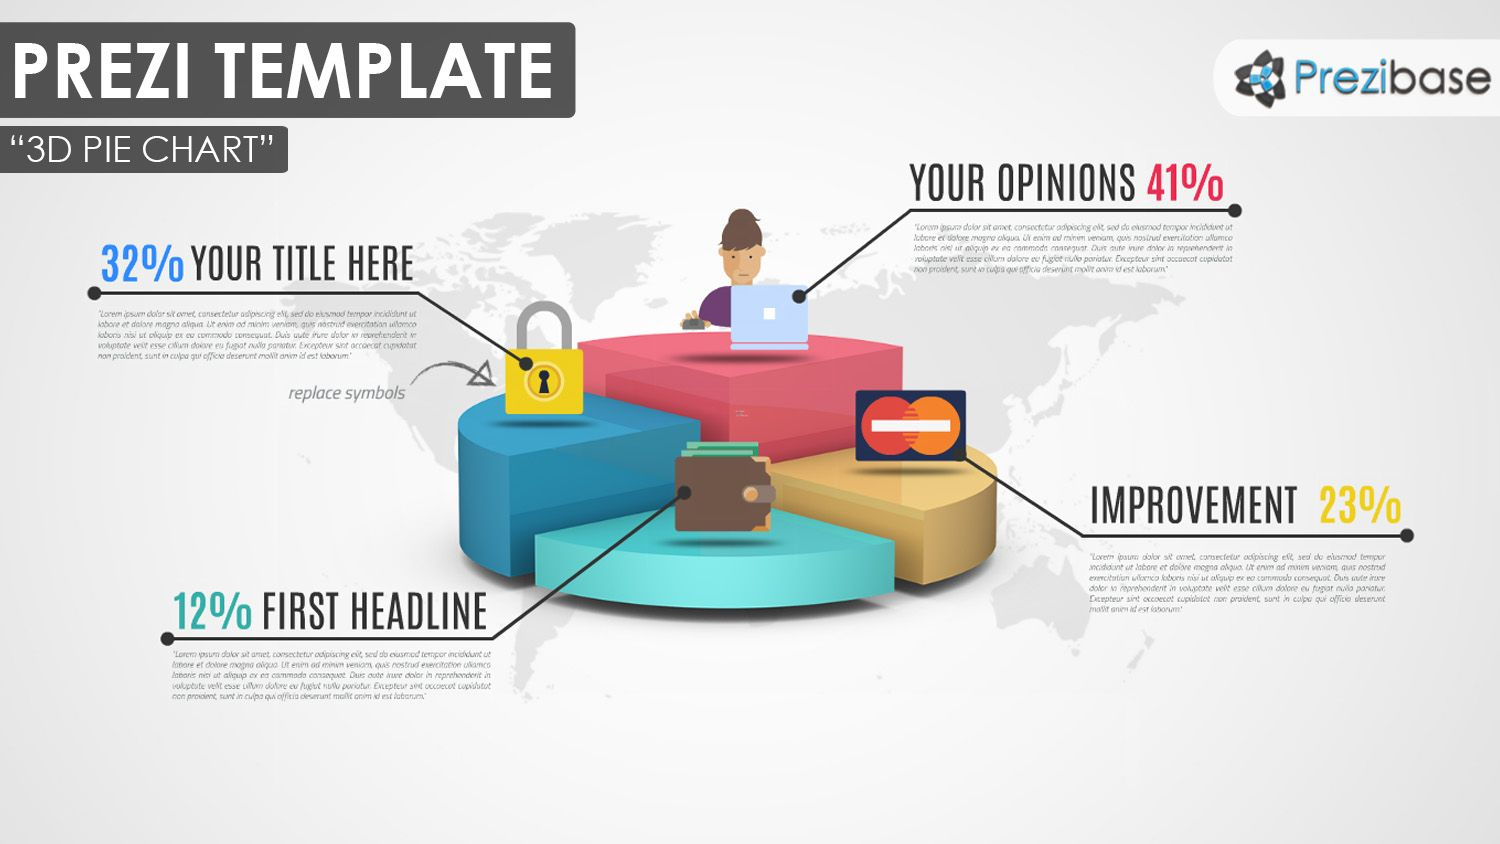 Pie diagram maker er diagram for transport management system best 3d pie chart prezi template with quarters infographic diagram 18f376264a9b8050ead494b9cba75b10 297167275392987167 pie diagram maker pie diagram maker ccuart Image collections